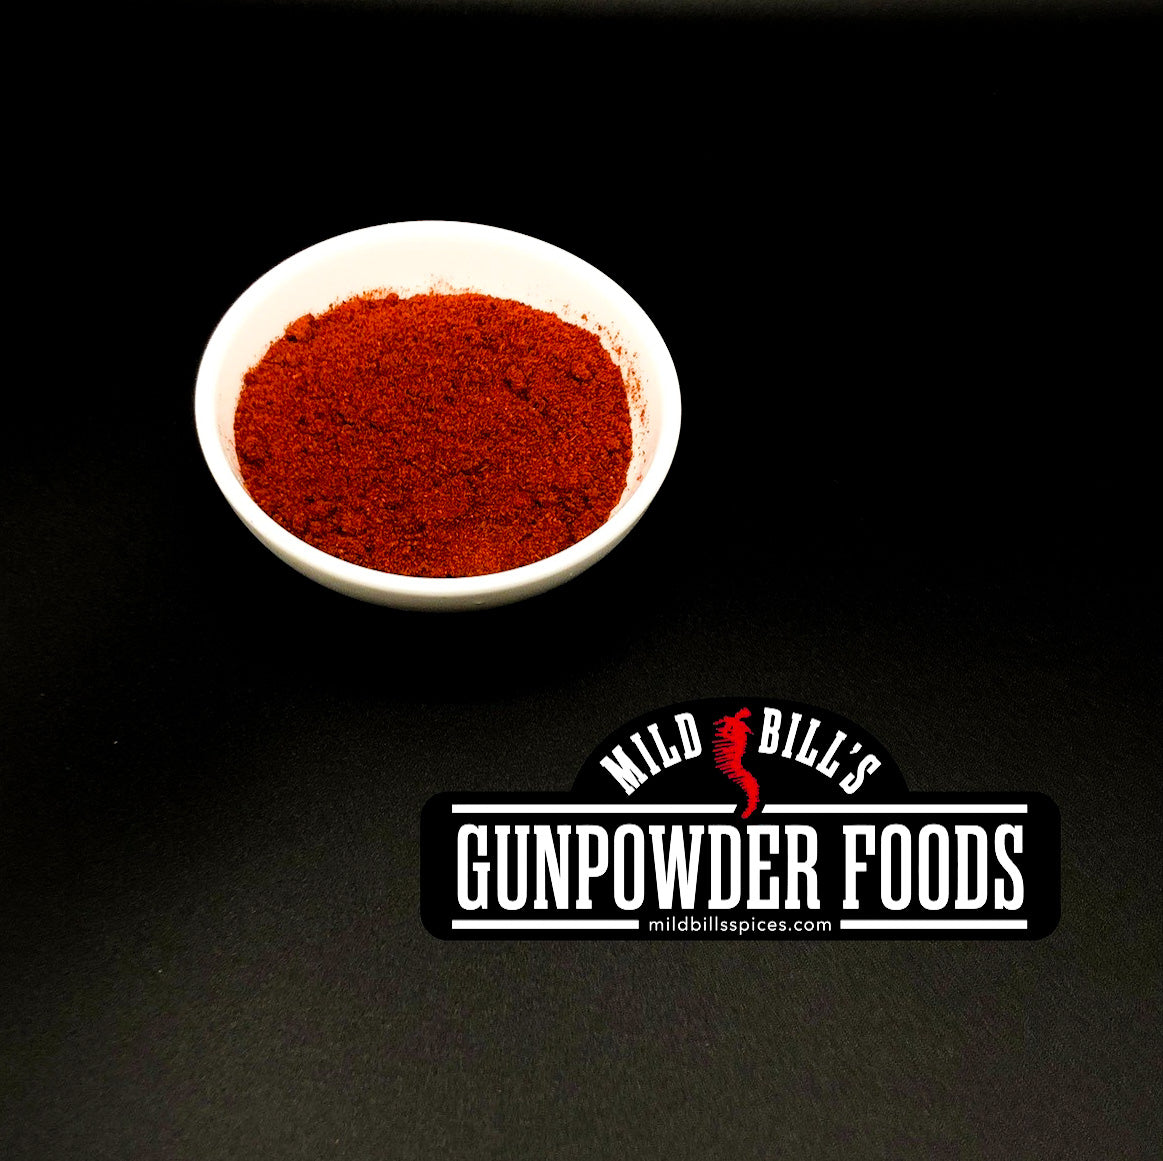 Champion Chili Powder Blend